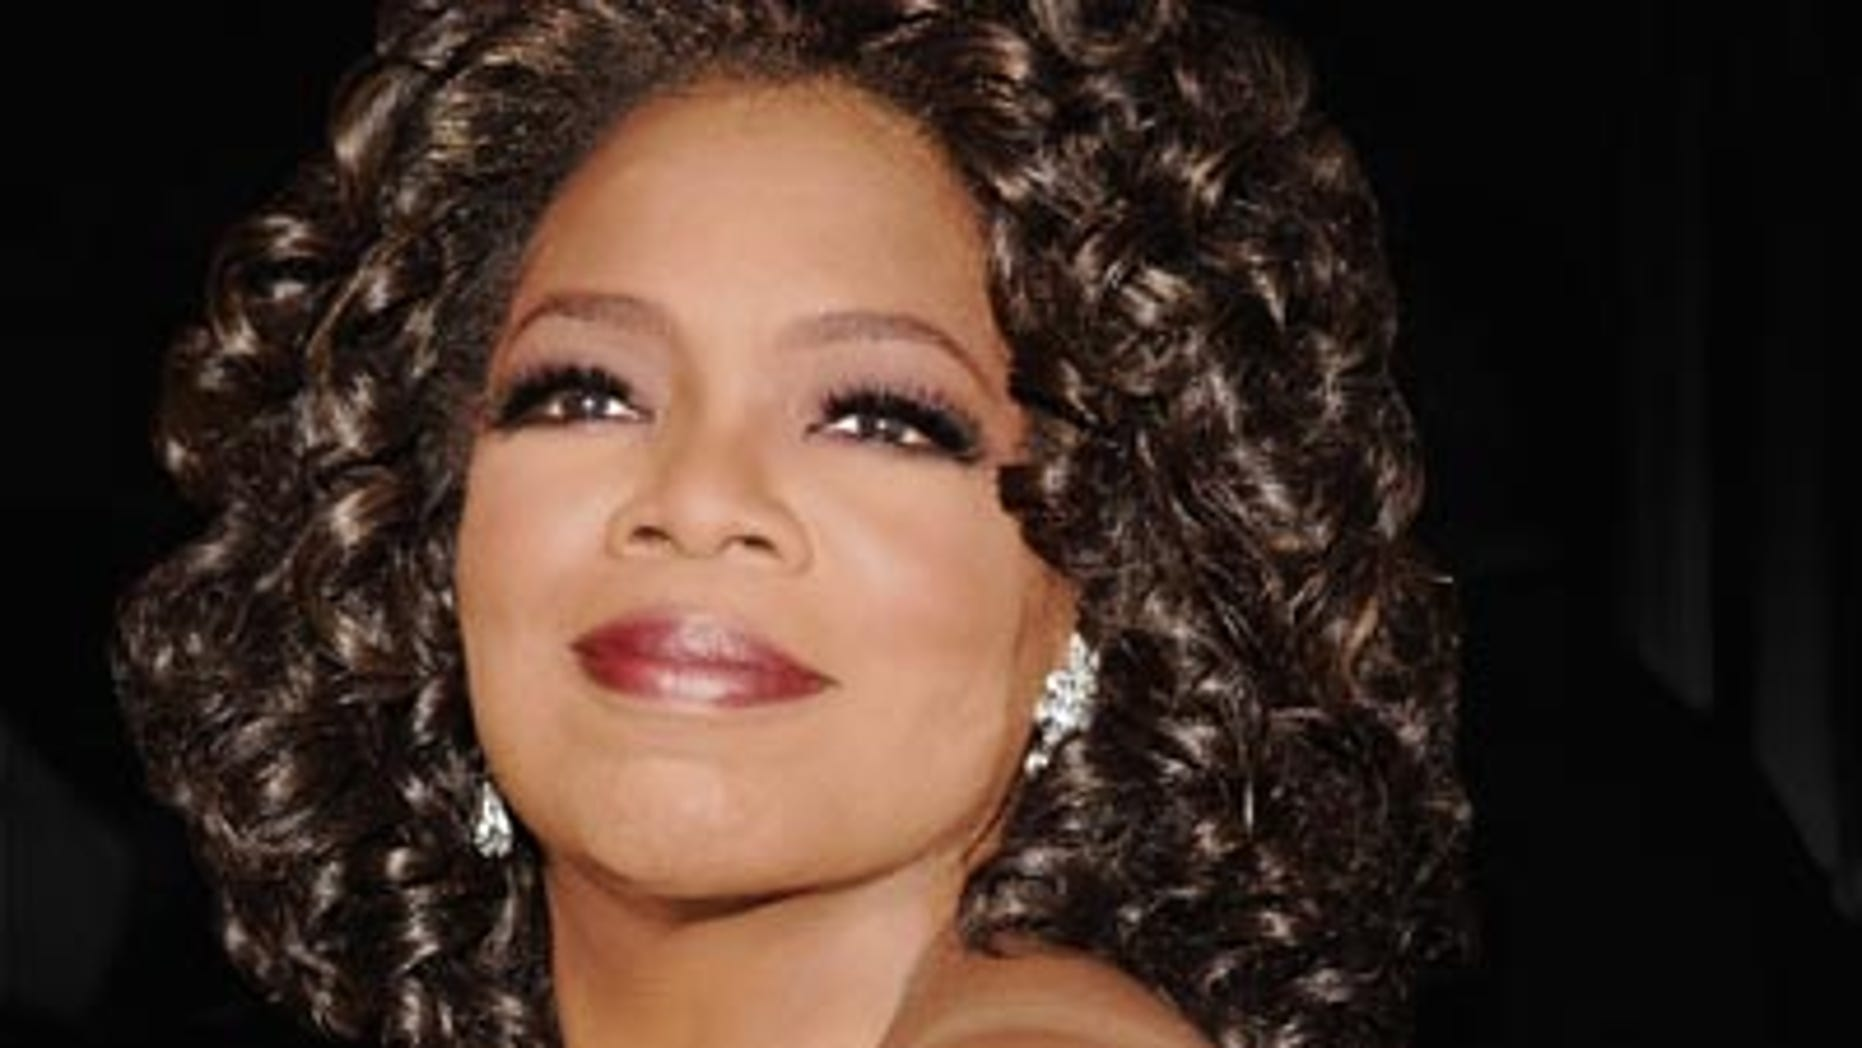 """Oprah Winfrey""""The Color Purple"""" Broadway Opening Night - Outside ArrivalsThe Broadway TheatreNew York City, New York United StatesDecember 1, 2005Photo by Jemal Countess/WireImage.comTo license this image (6637119), contact WireImage:U.S. +1-212-686-8900 / U.K. +44-207 659 2815 / Australia +61-2-8262-9222 / Japan: +81-3-5464-7020+1 212-686-8901 (fax)info@wireimage.com (e-mail)www.wireimage.com (web site)"""